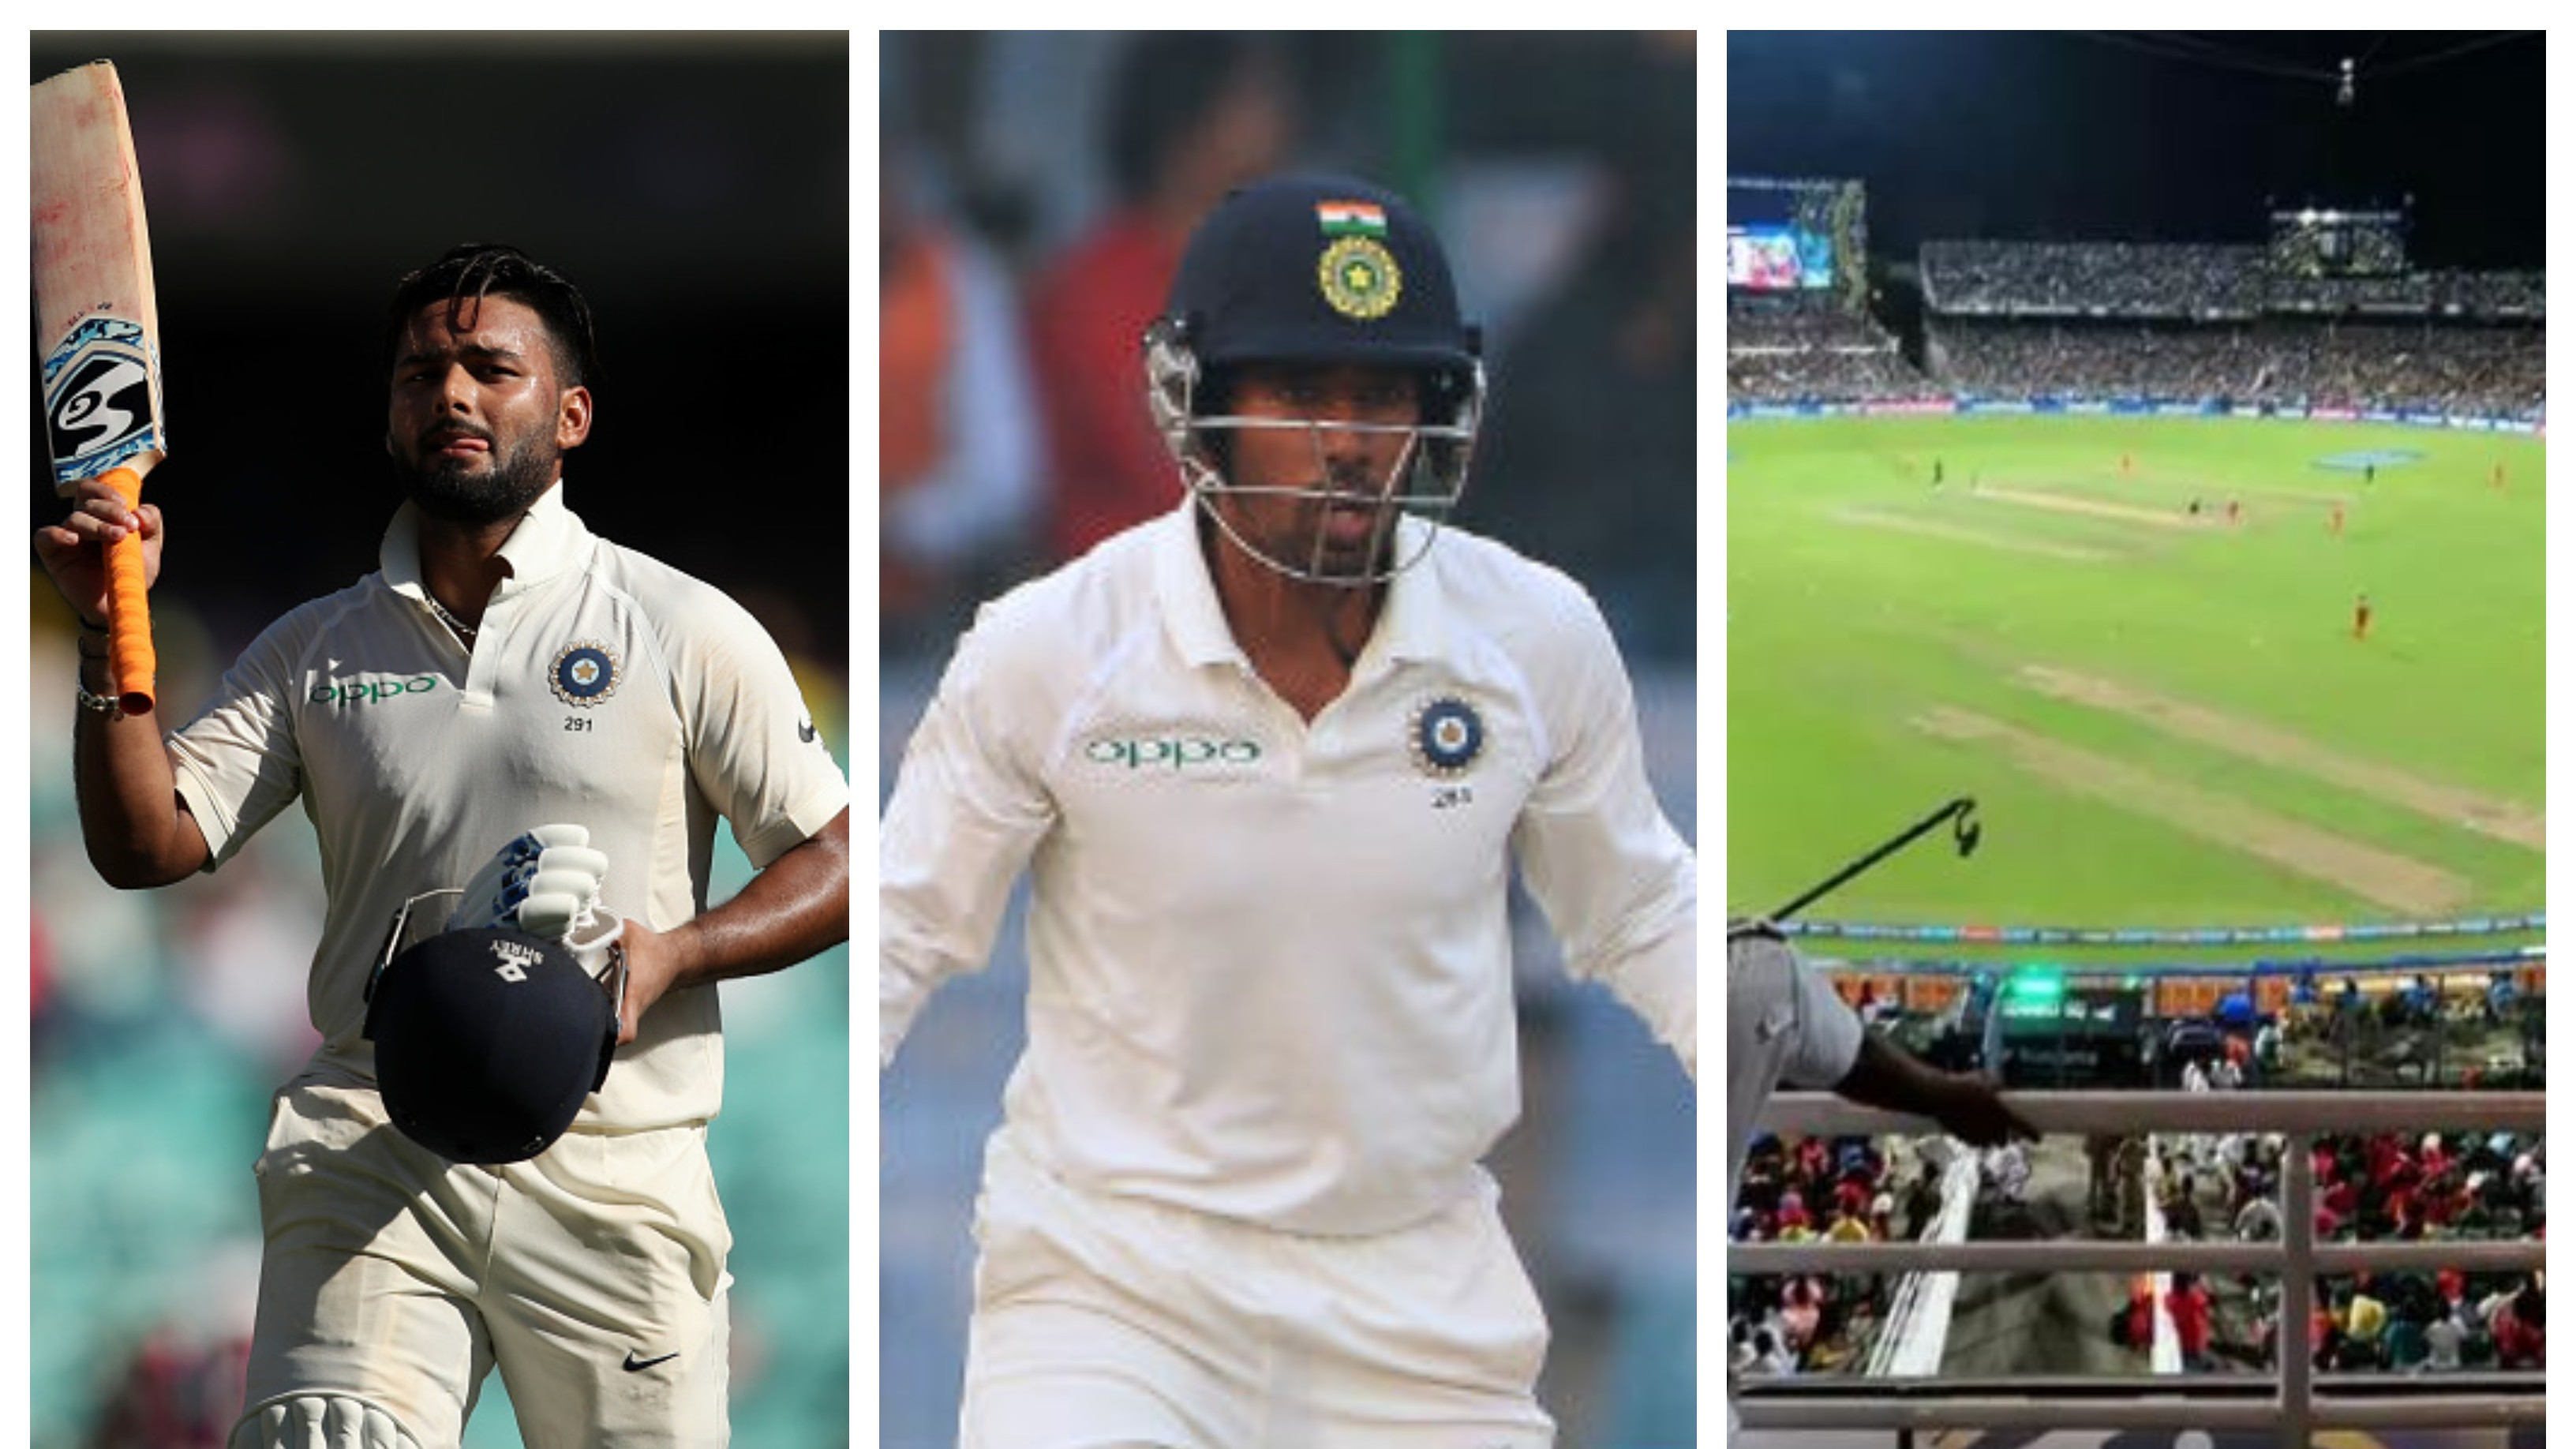 Saha reflects upon competition with Pant, weigh in over D/N Test in Kolkata